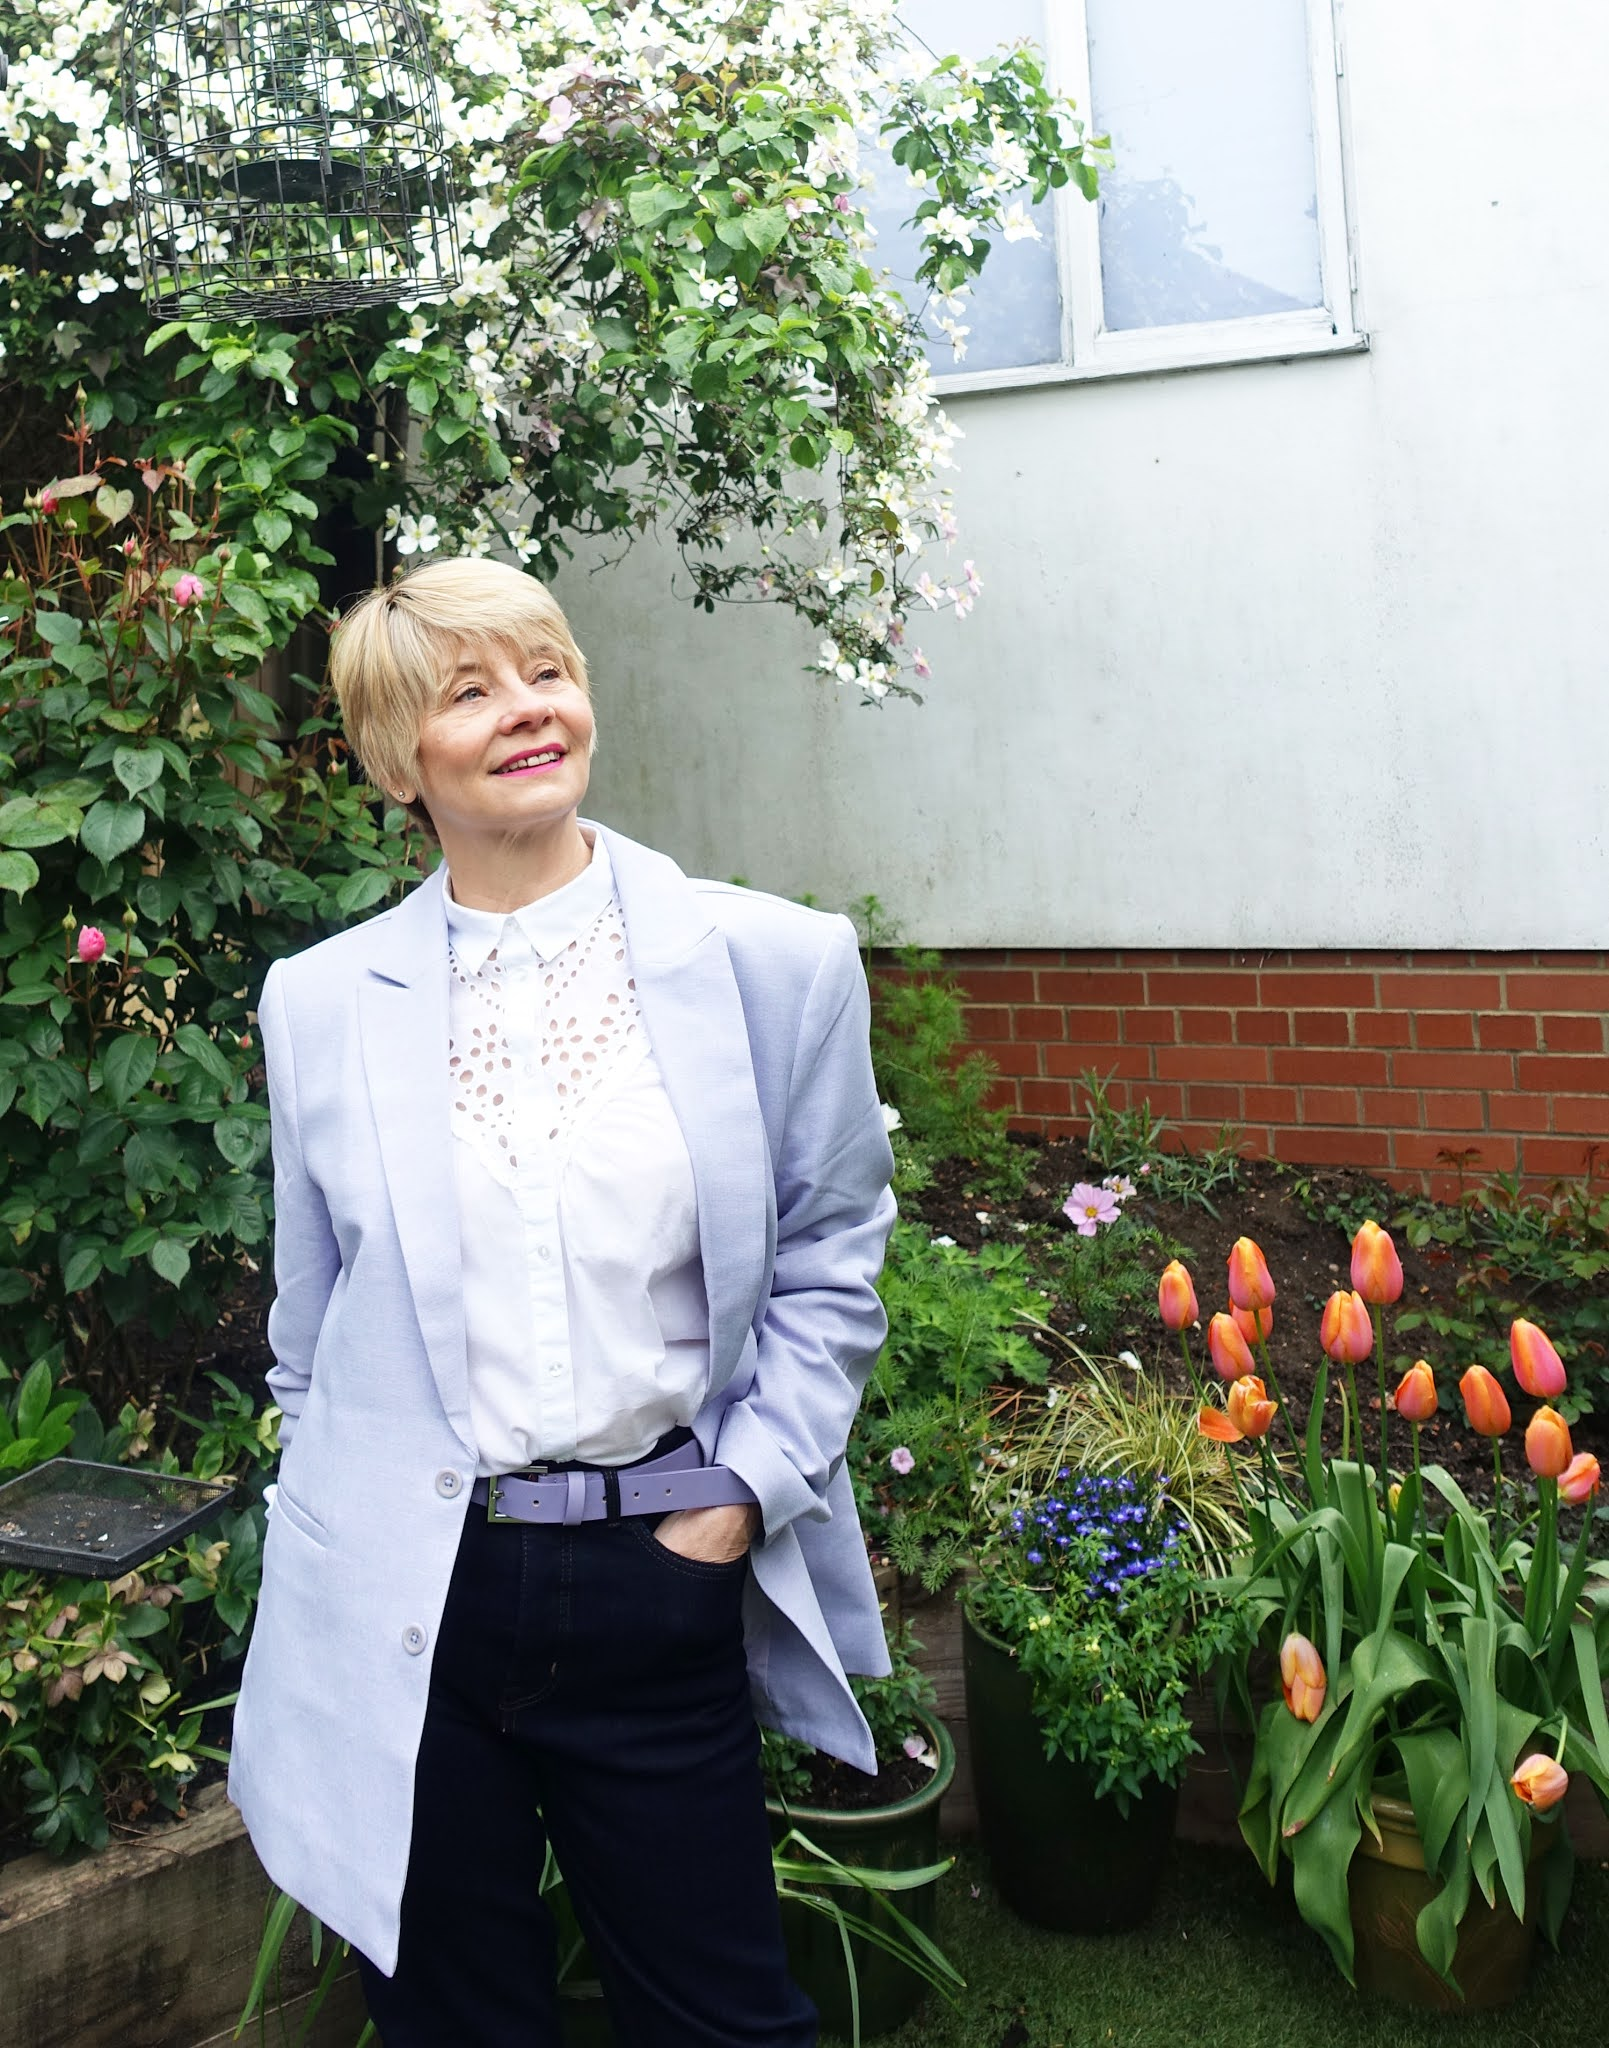 Gail Hanlon from Is This Mutton the over 50s style blog